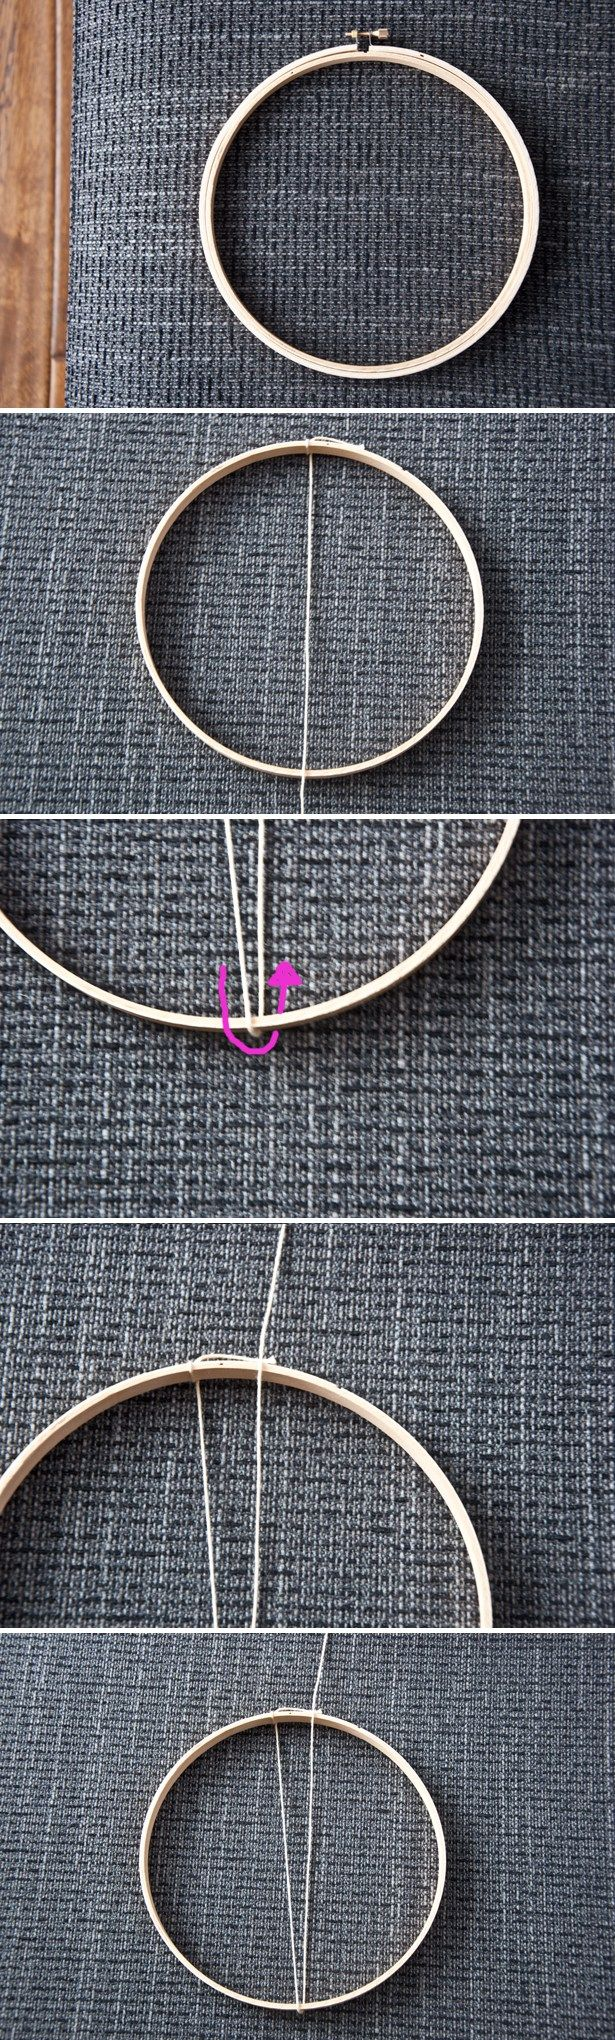 How to Use an Embroidery Hoop as a Loom | The Weaving Loom